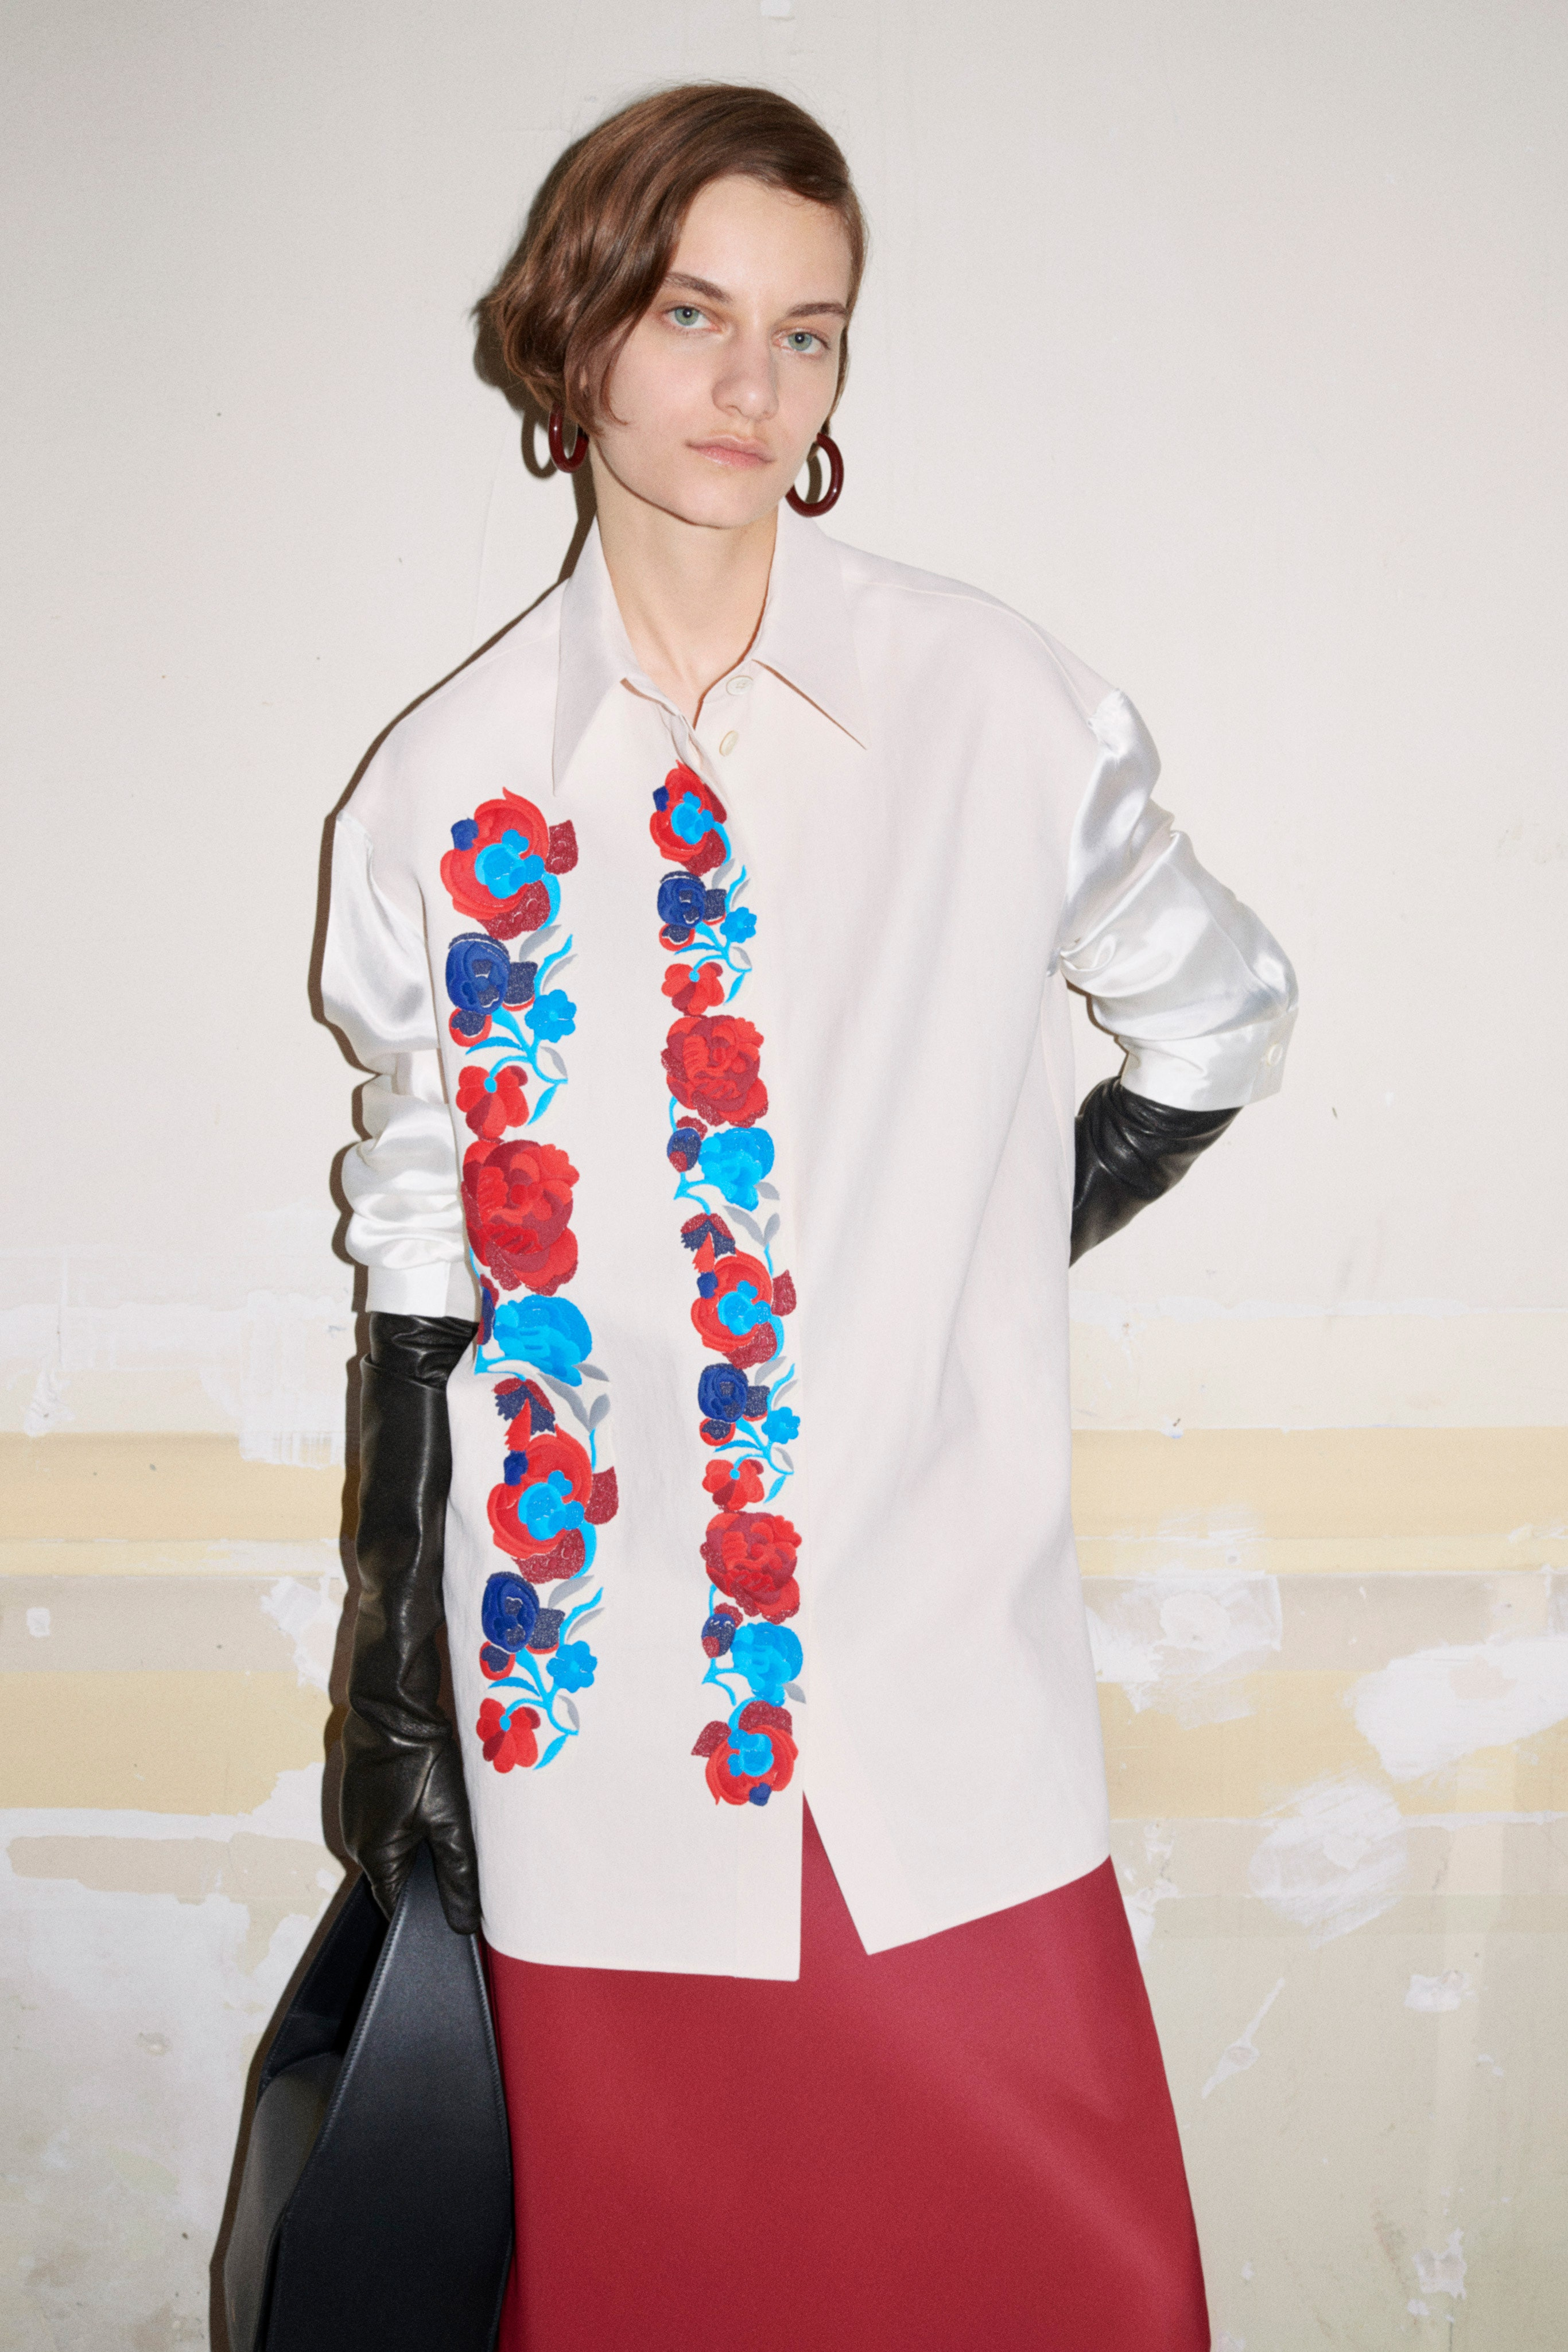 For walks in the fresh air: A seasonal collection of Jil Sander arrived at Asthik (photo 14)